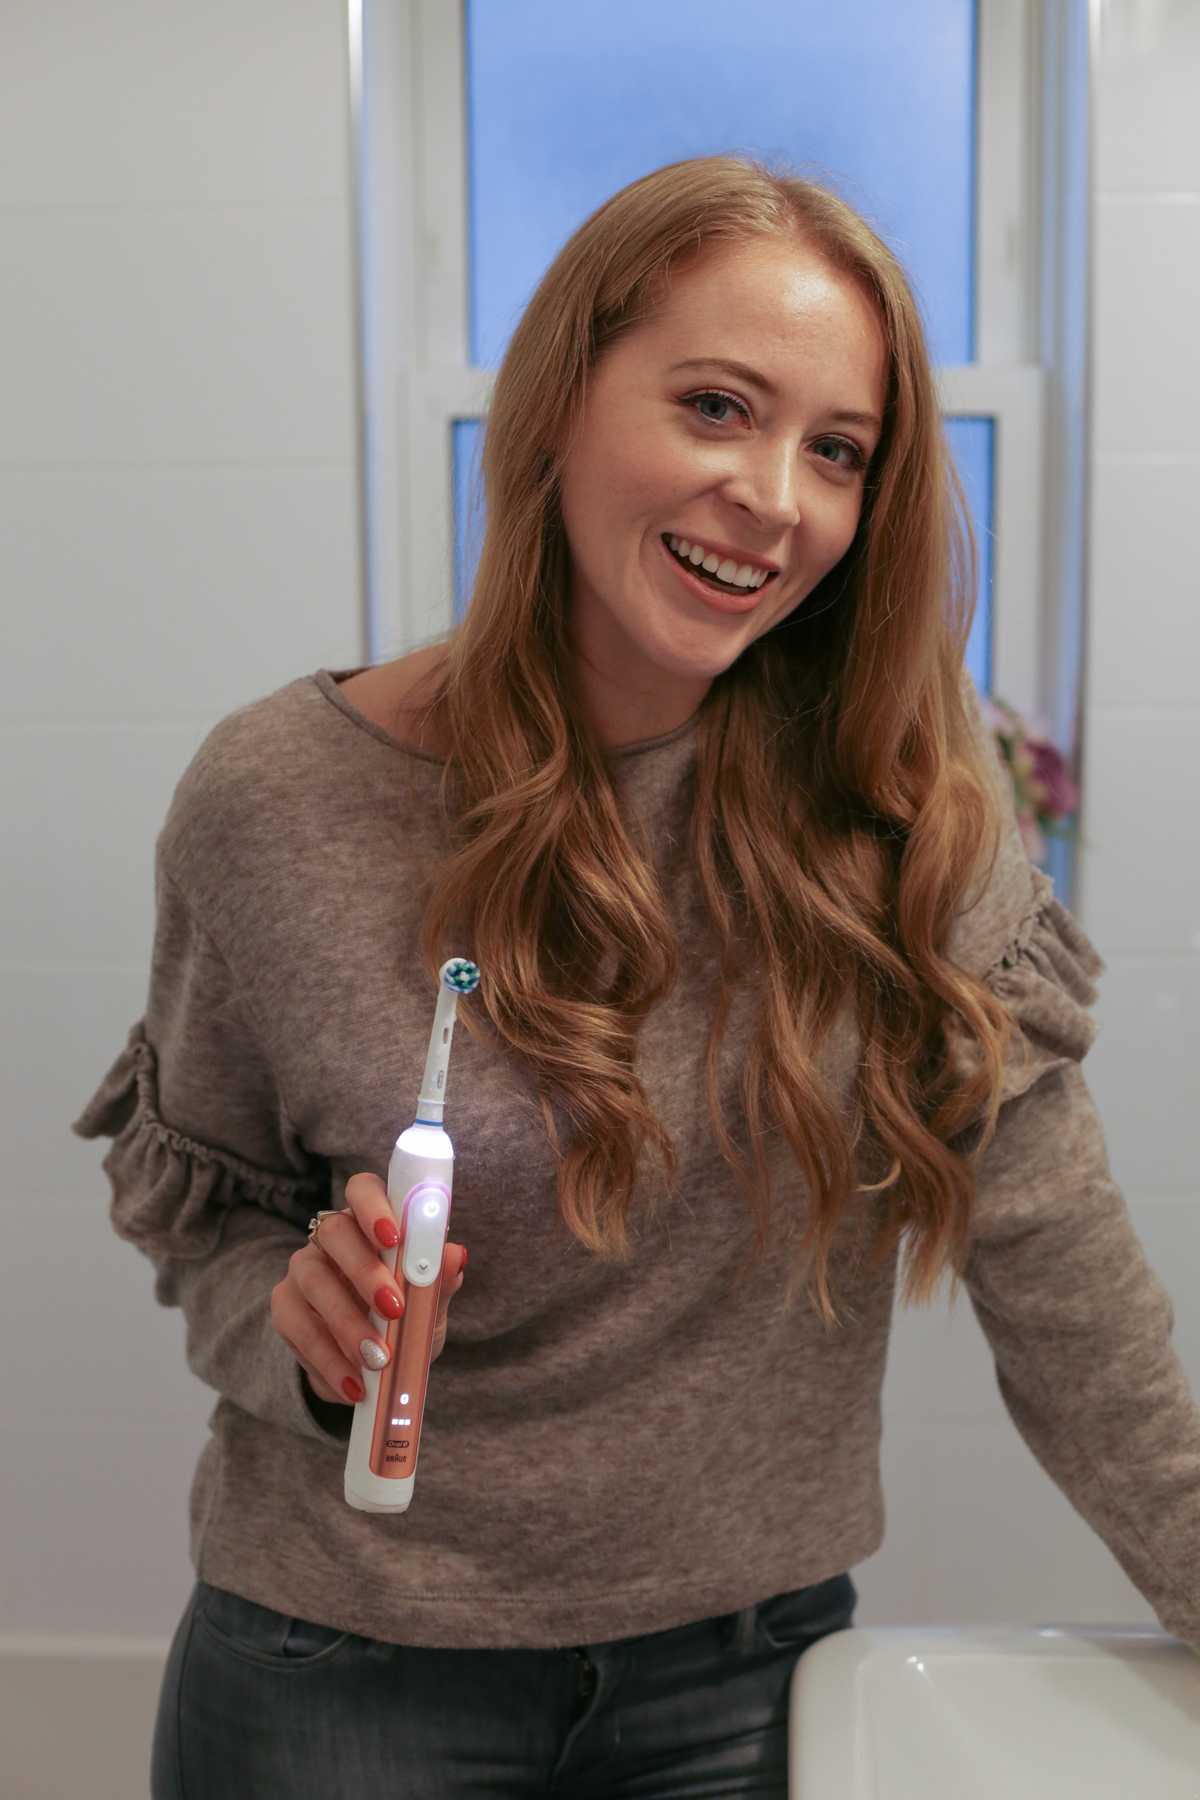 oral b (9 of 11)